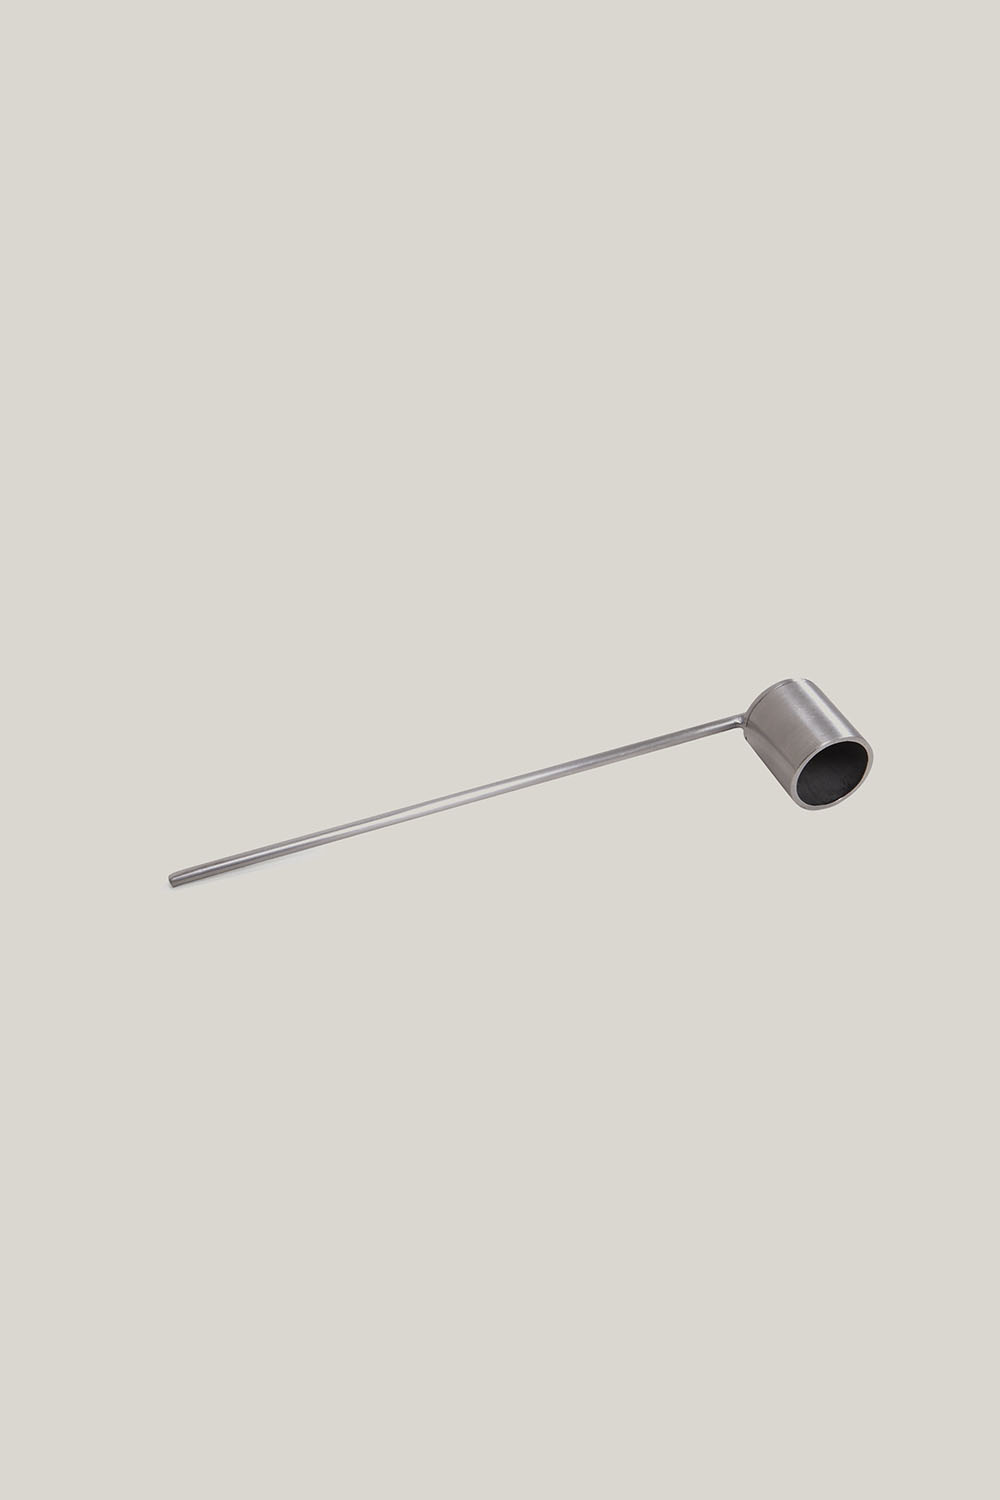 Candle Snuffer Stainless Steel